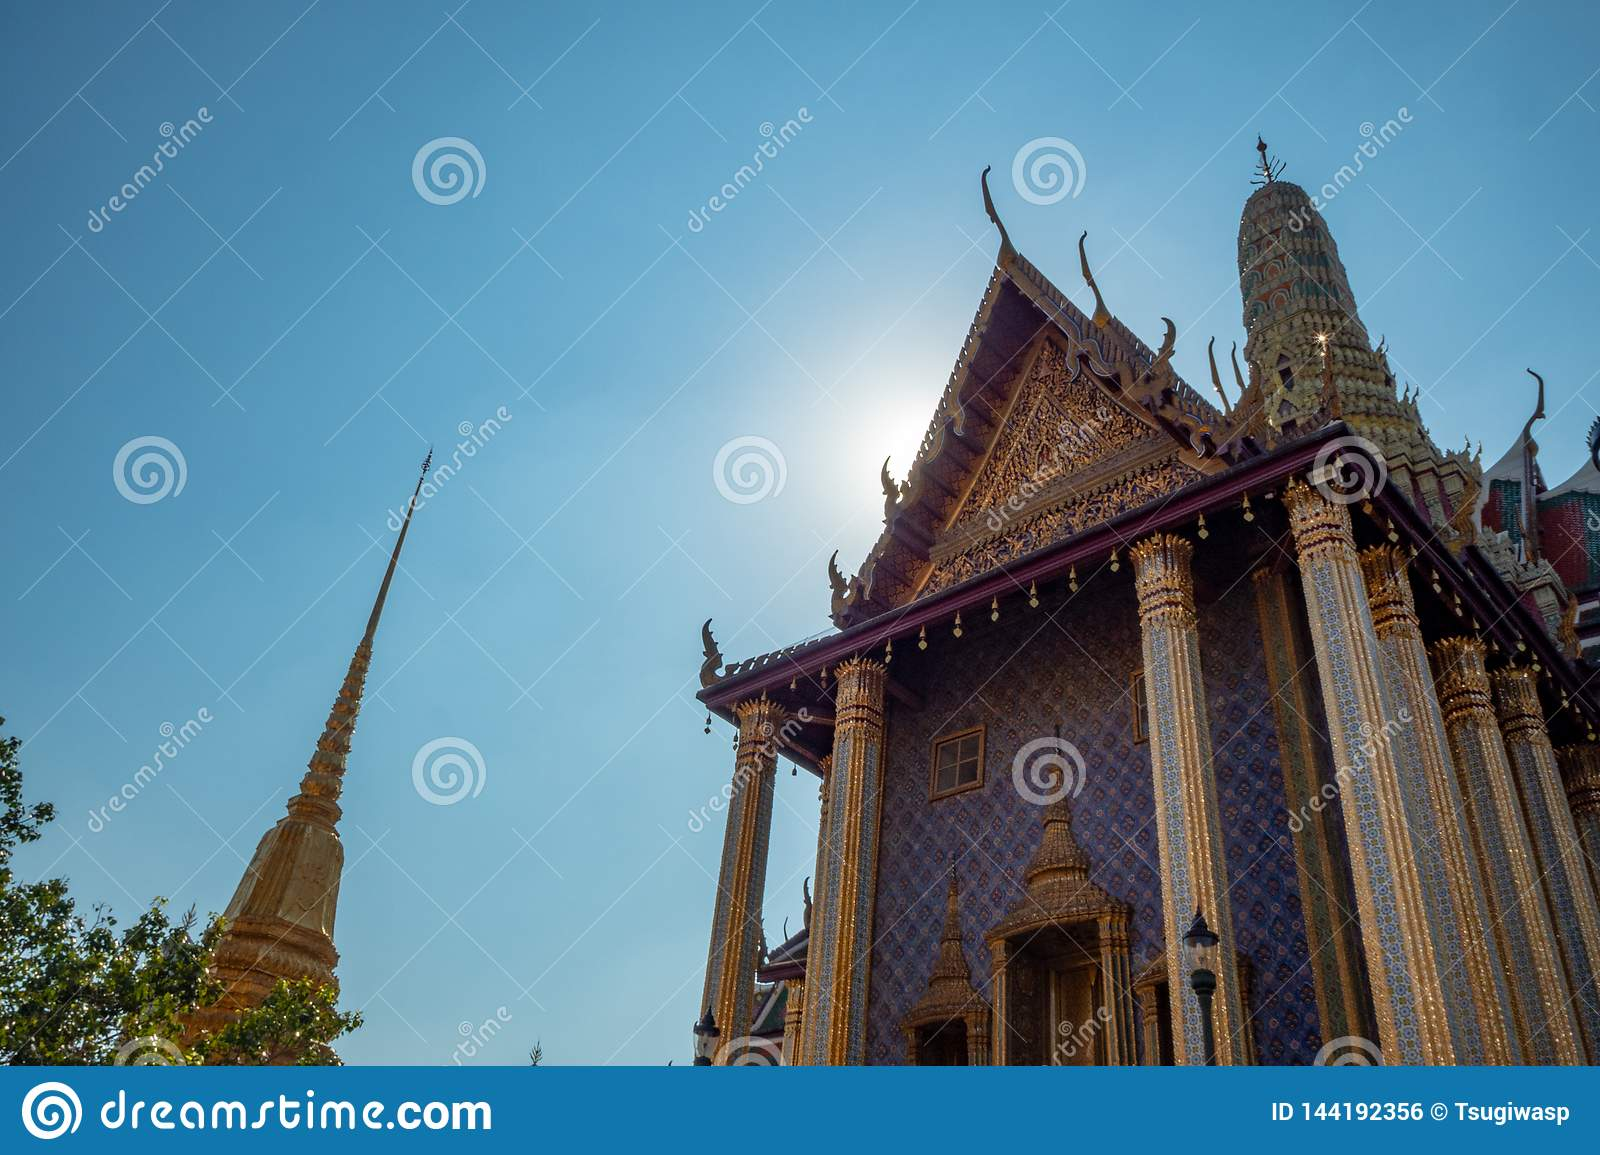 Main hall of royal temple in the grand palace of thailand on blue sky background